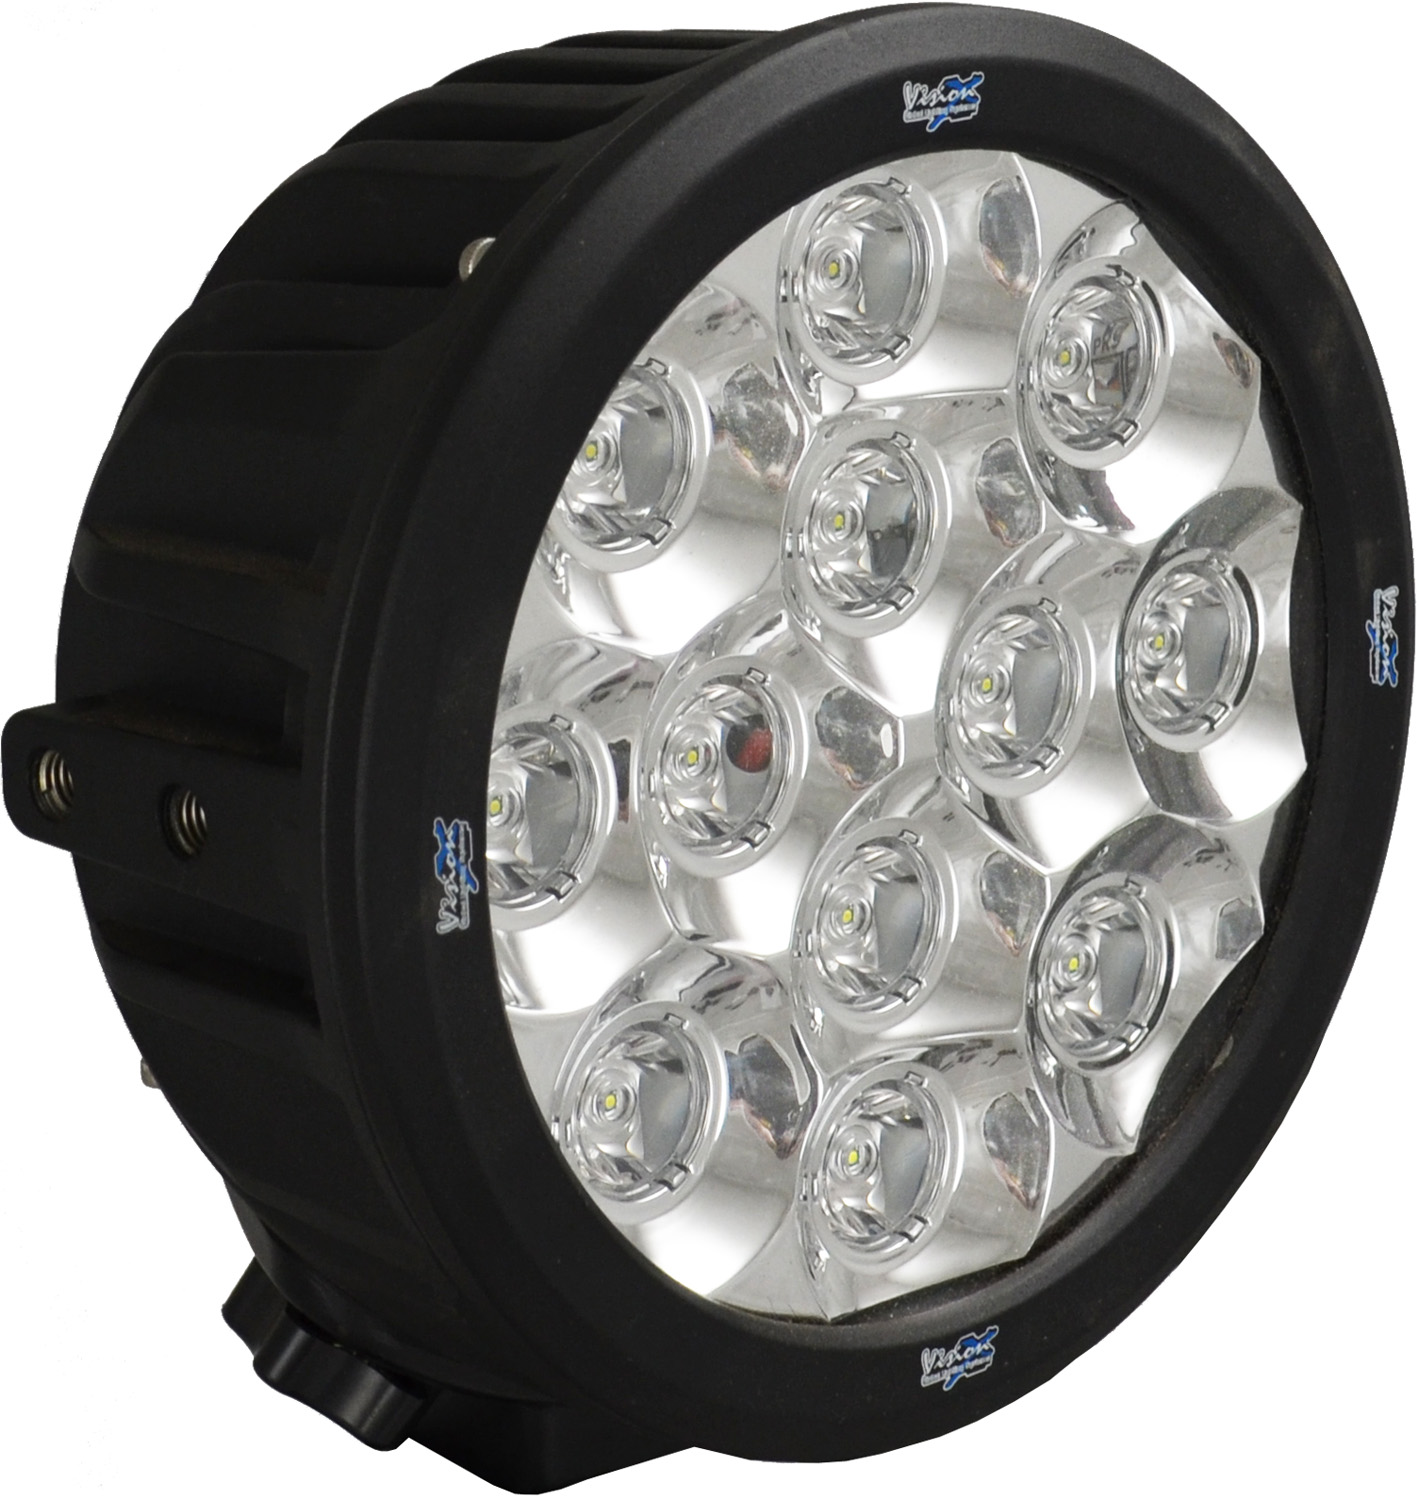 "6"" TRANSPORTER XTREME 12 5W LED'S 10_ NARROW"